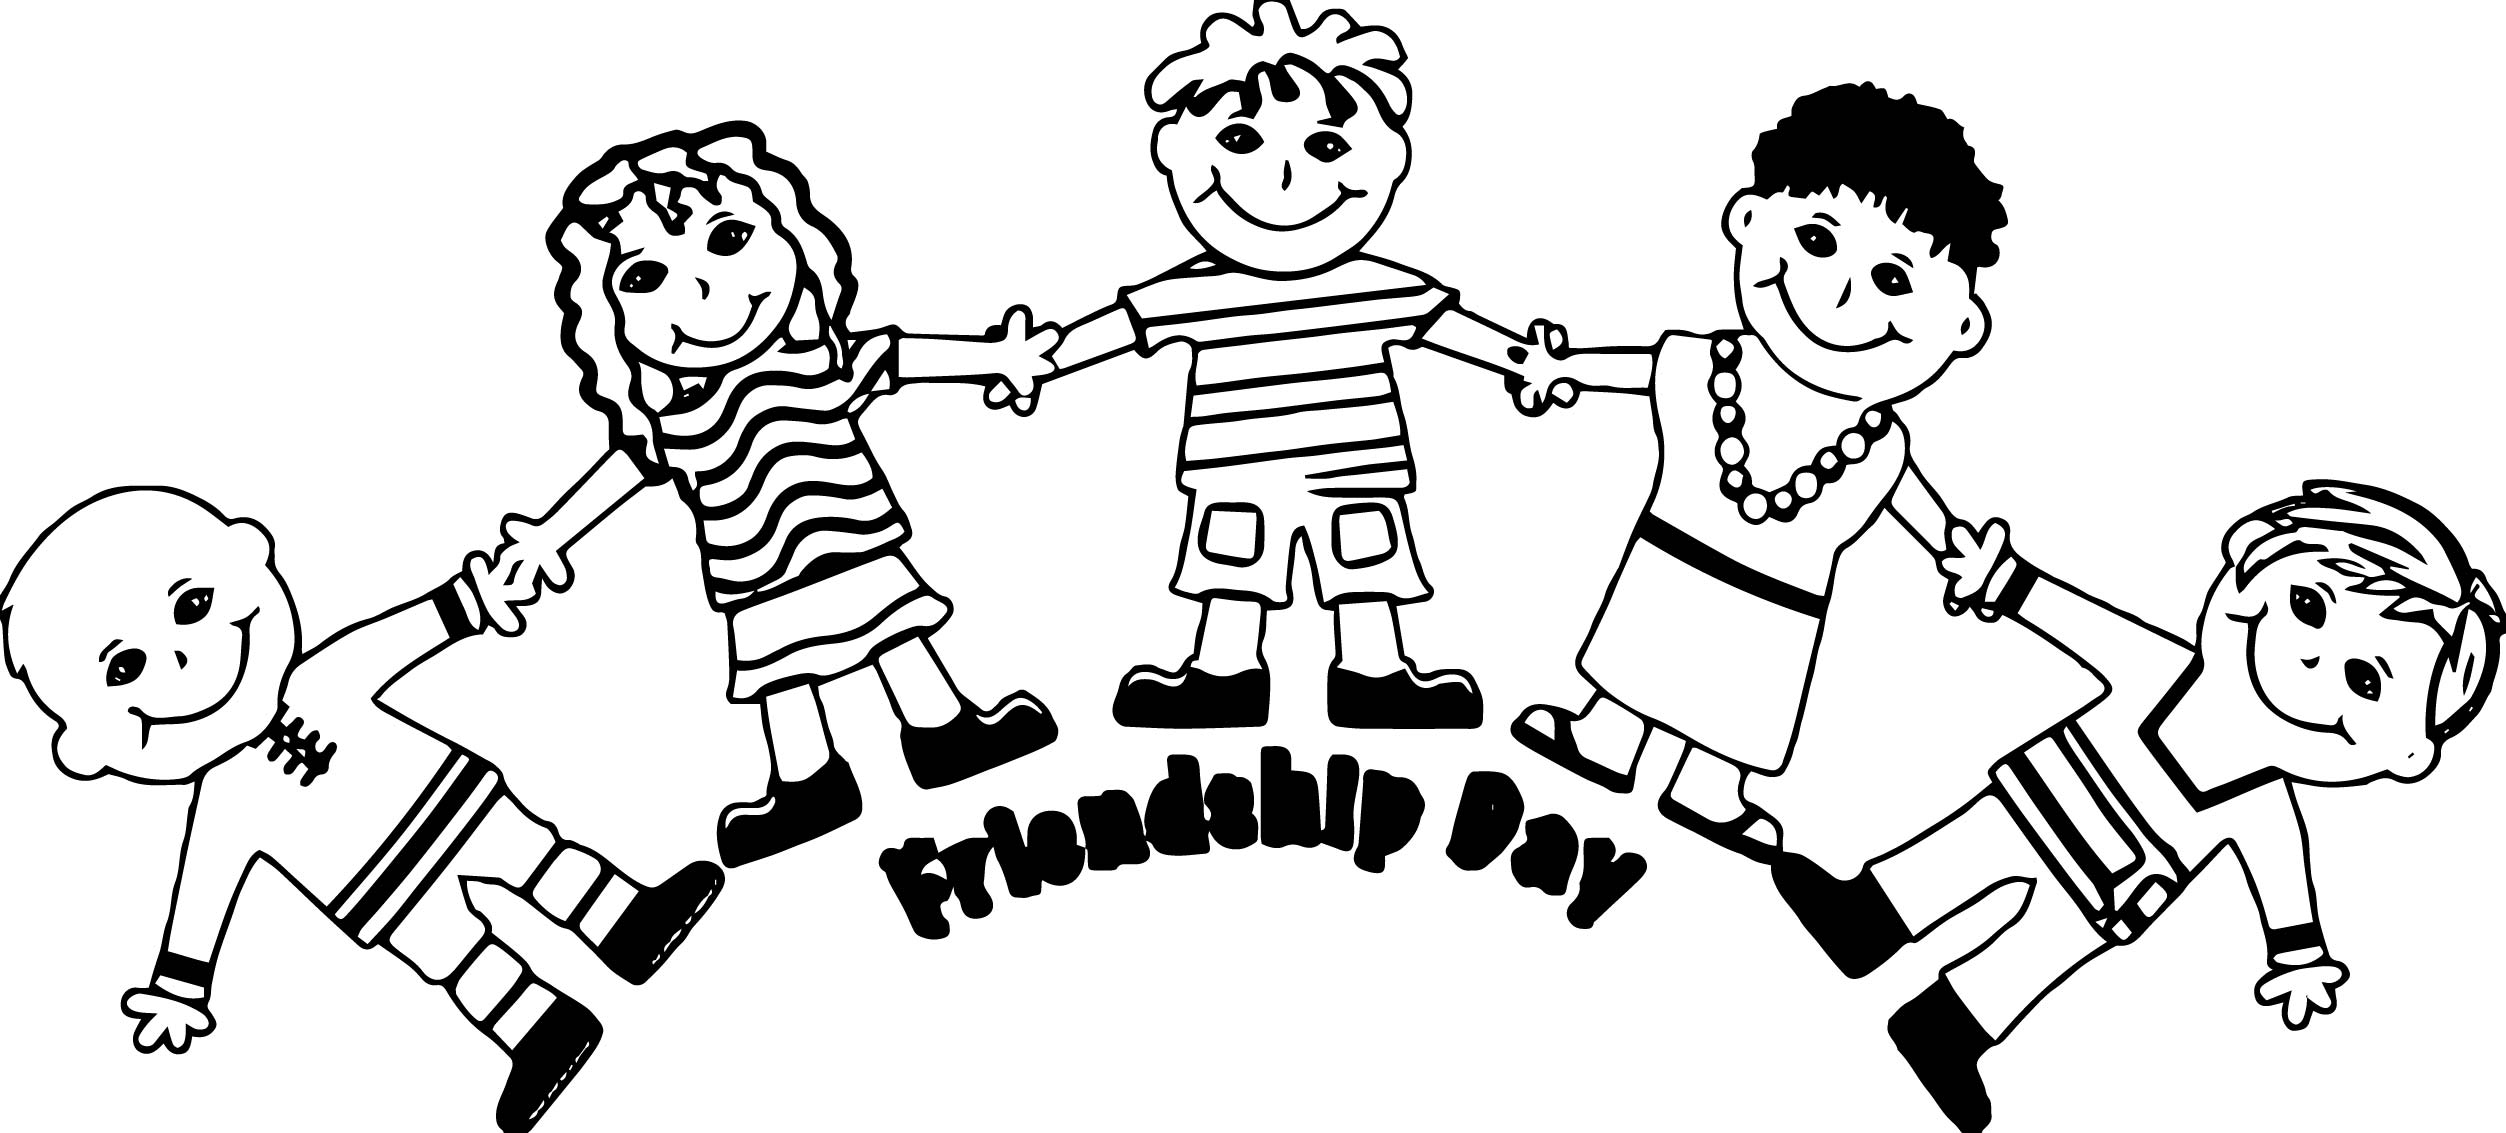 Friendship Girls Coloring Page